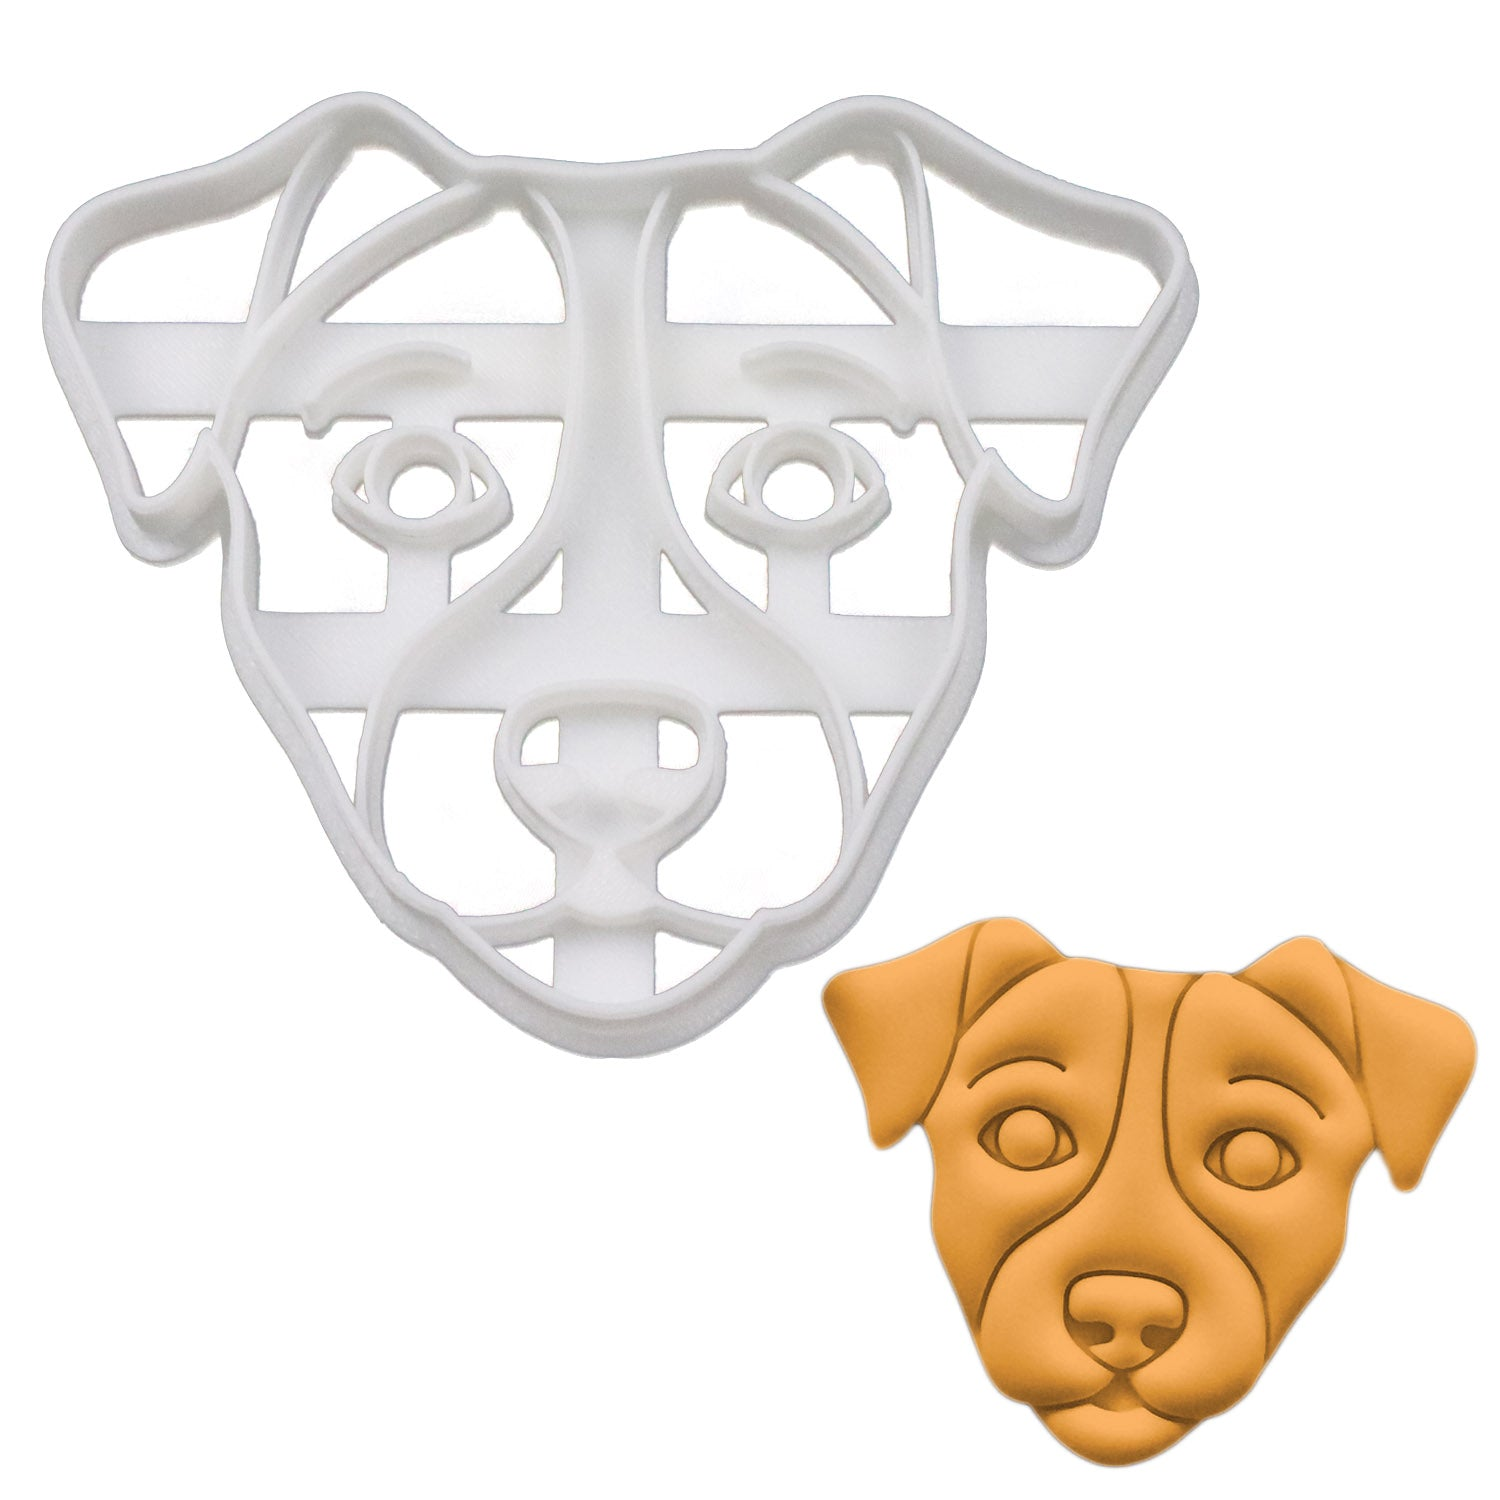 Jack russell dog face cookie cutter